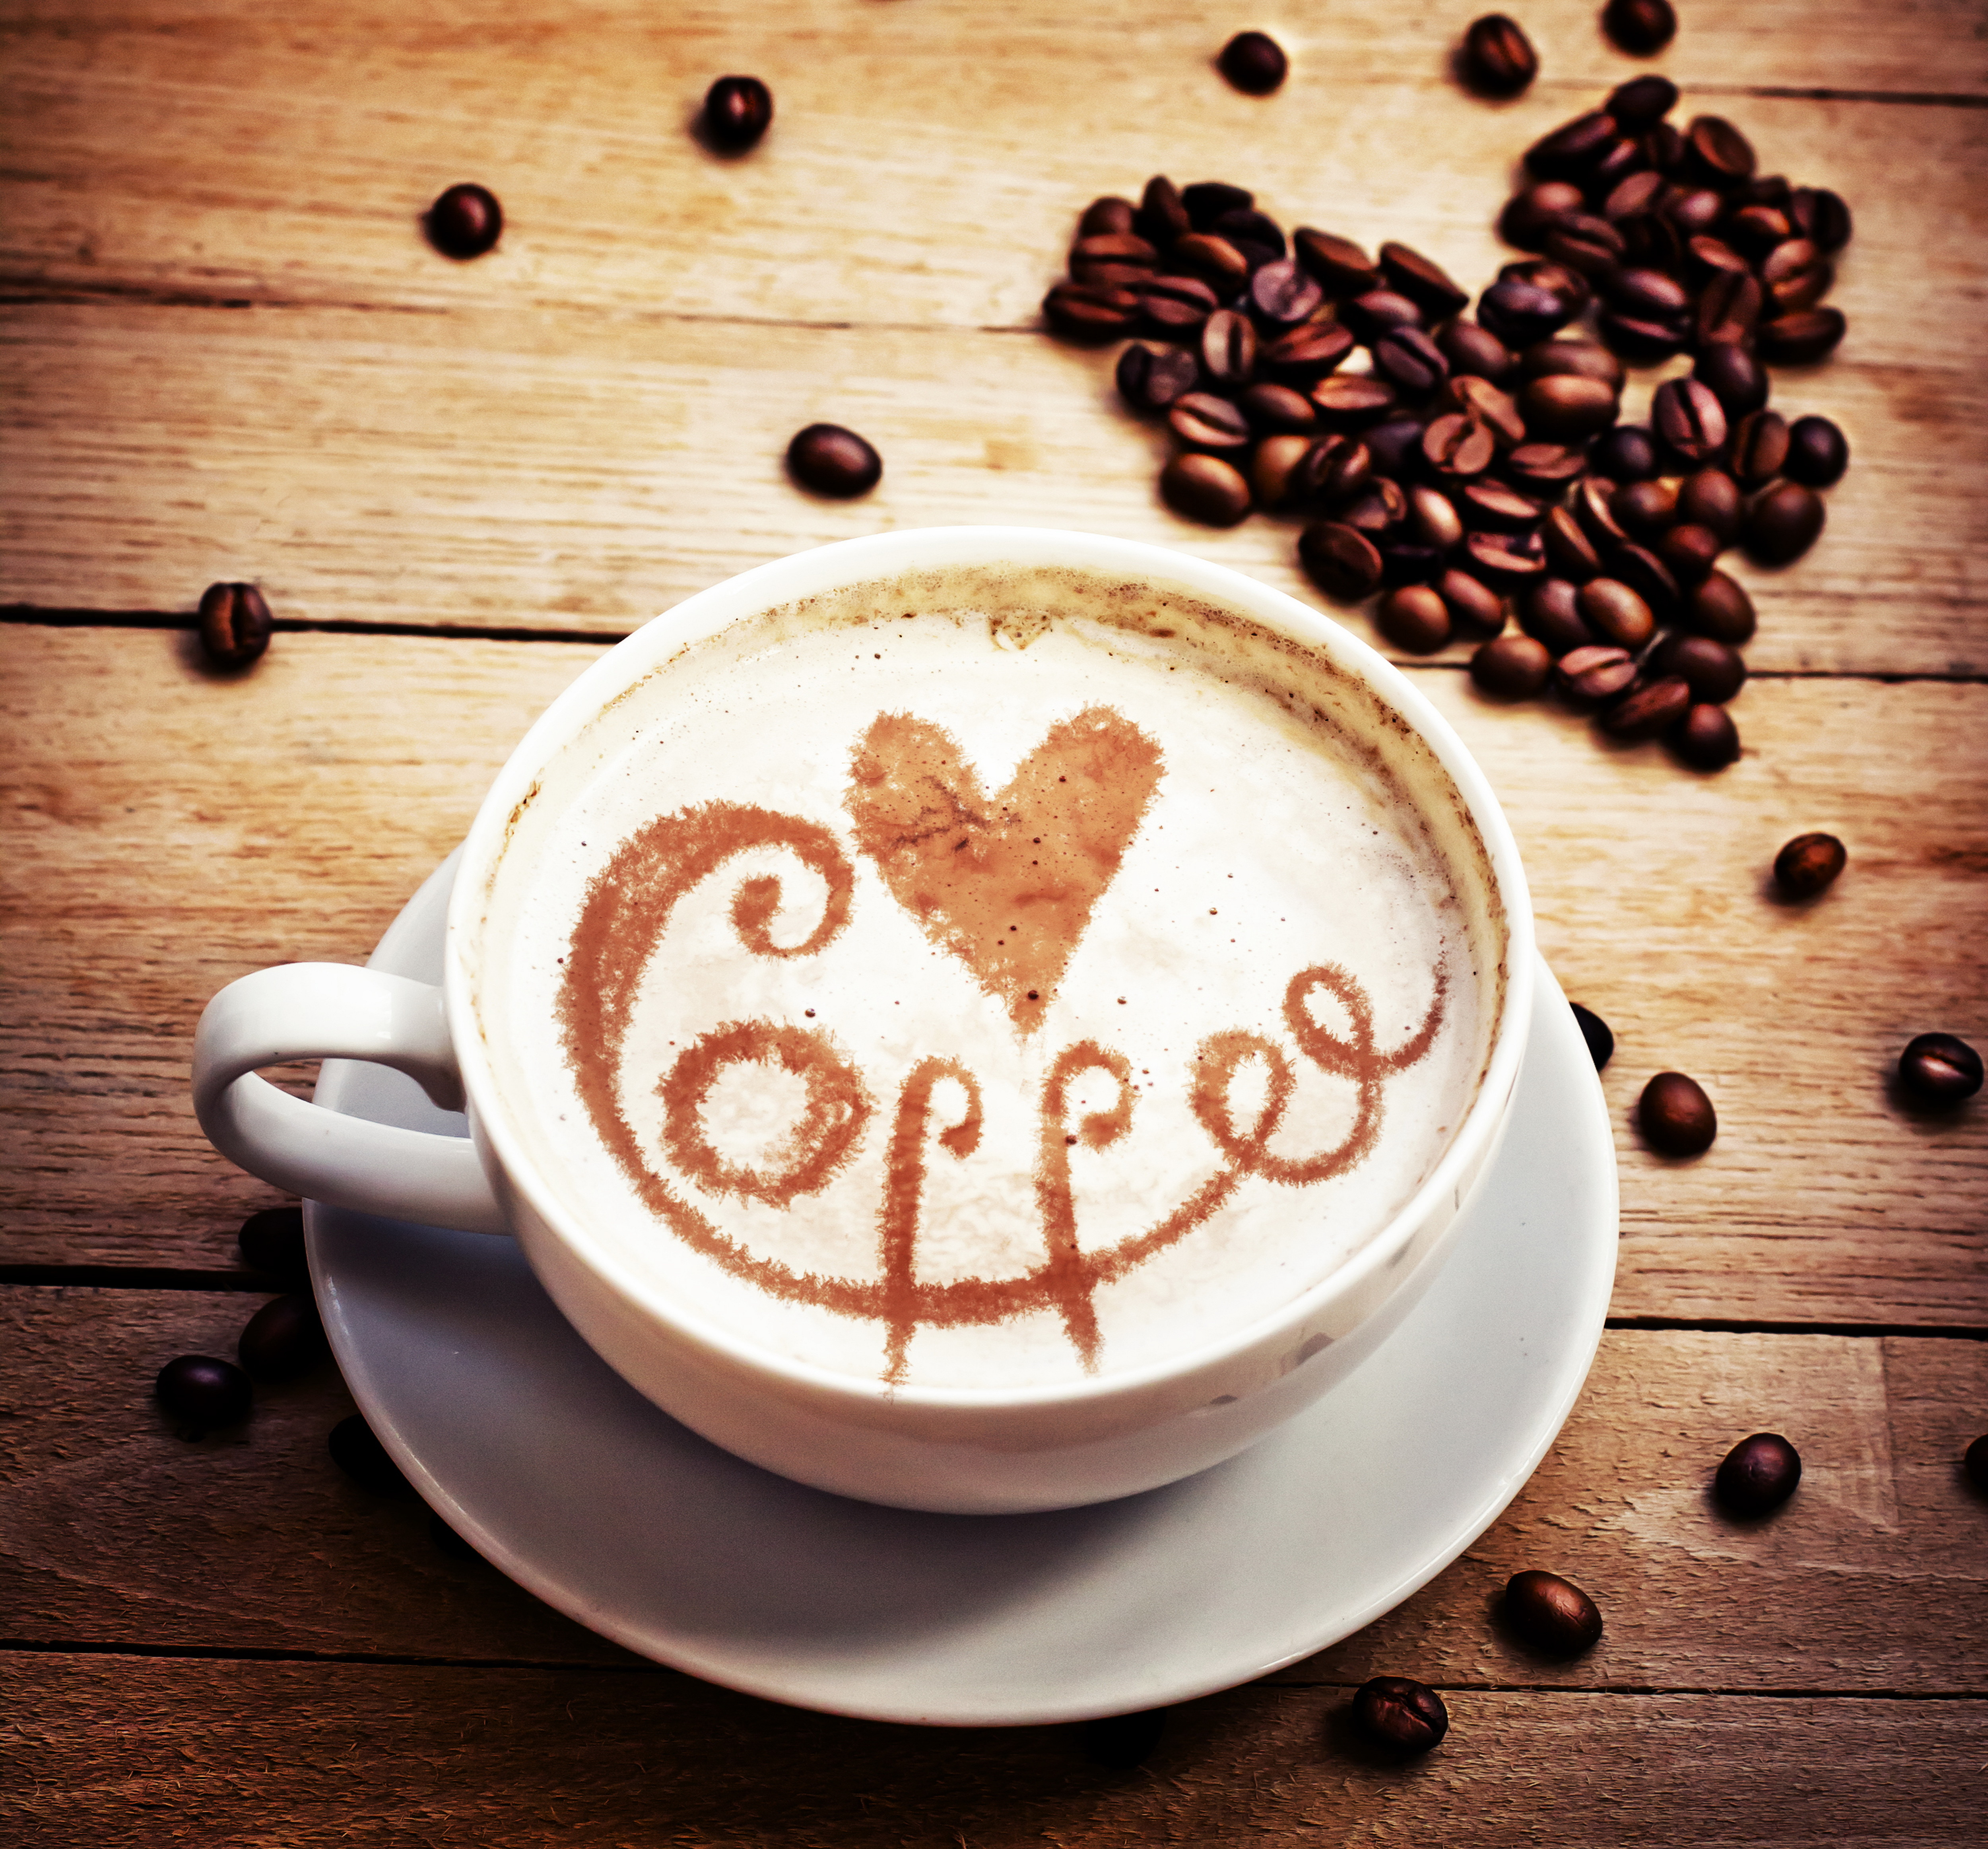 Benefits of Coffee: What Science Has to Say Benefits of Coffee: What Science Has to Say new foto